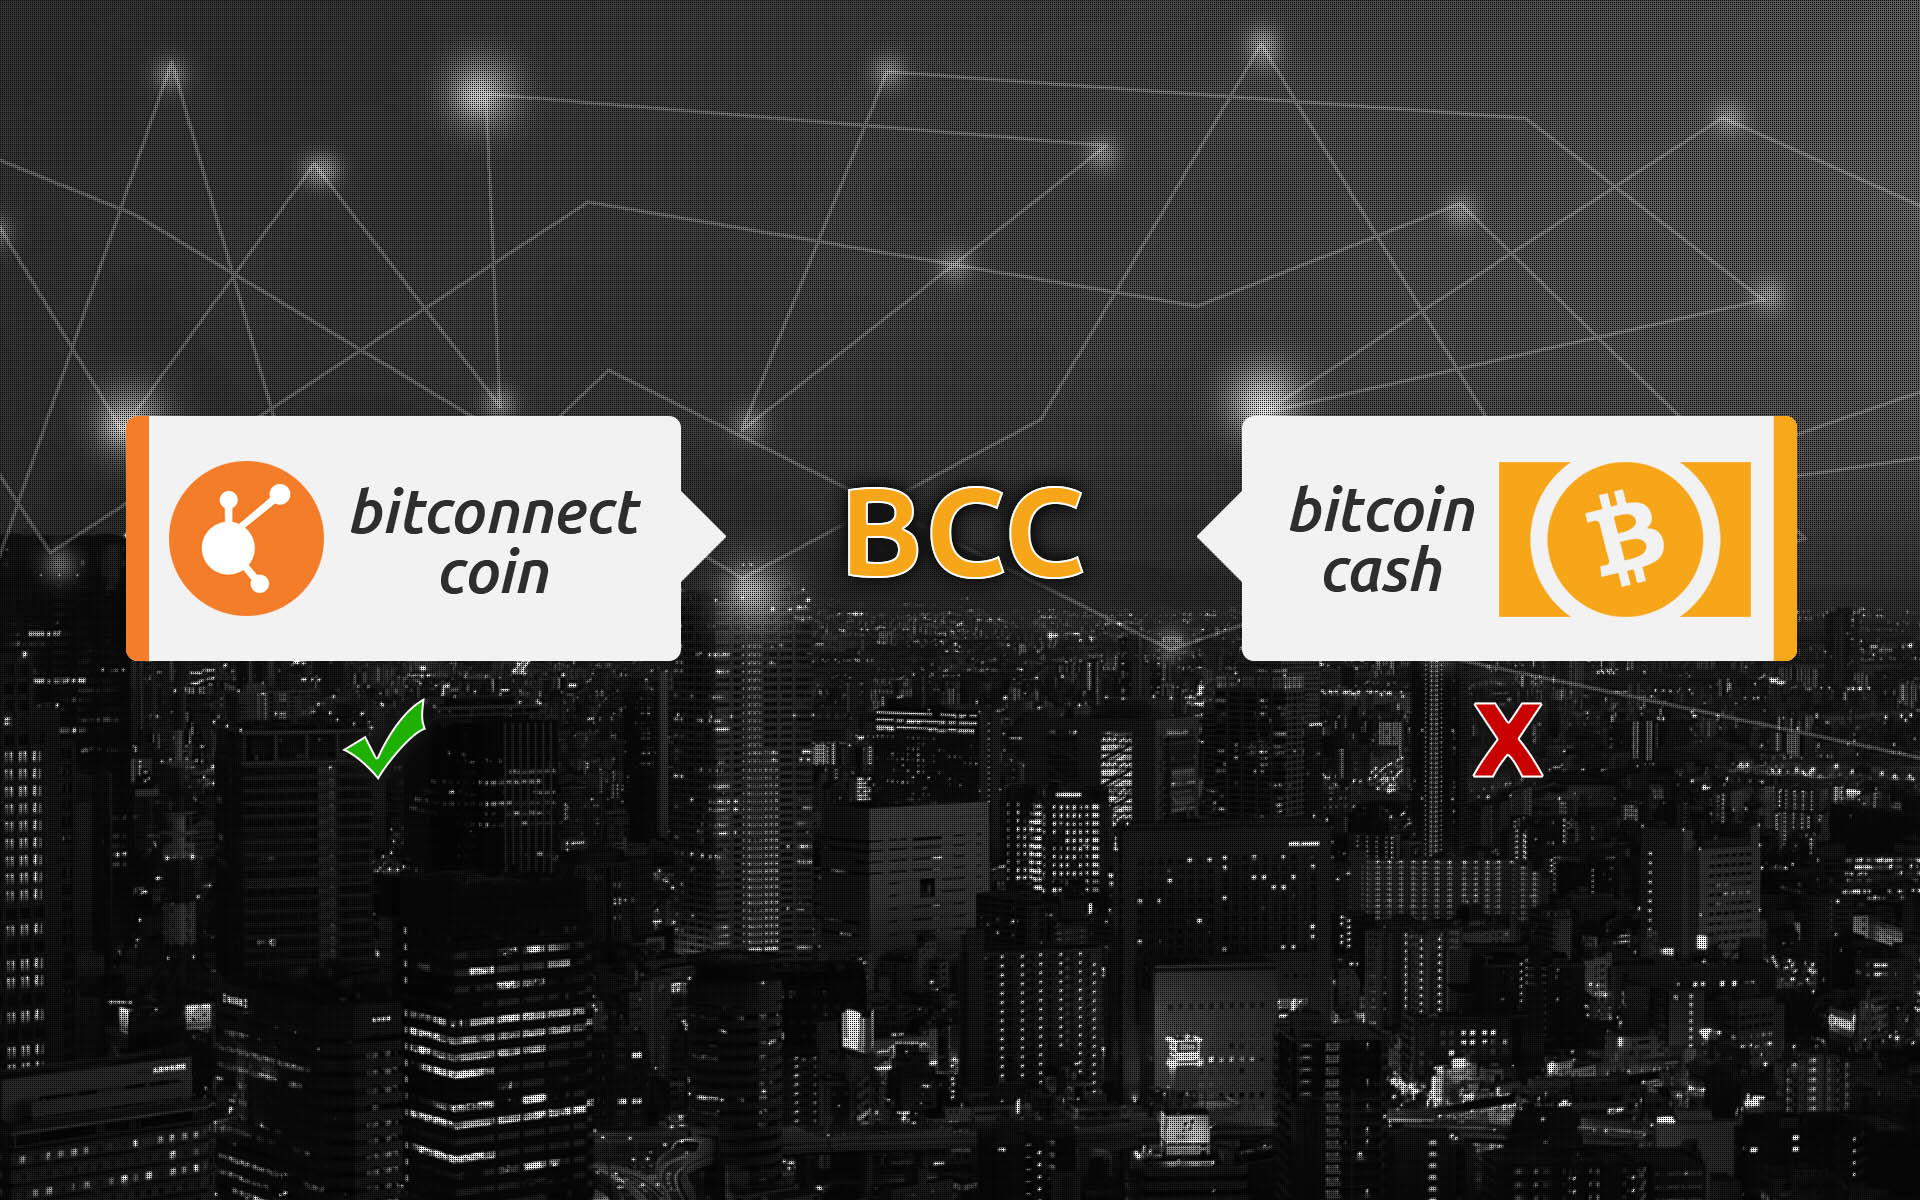 Cryptocurrency Confusion: BitConnect Coin Forced to Confirm Ownership of its BCC Symbol